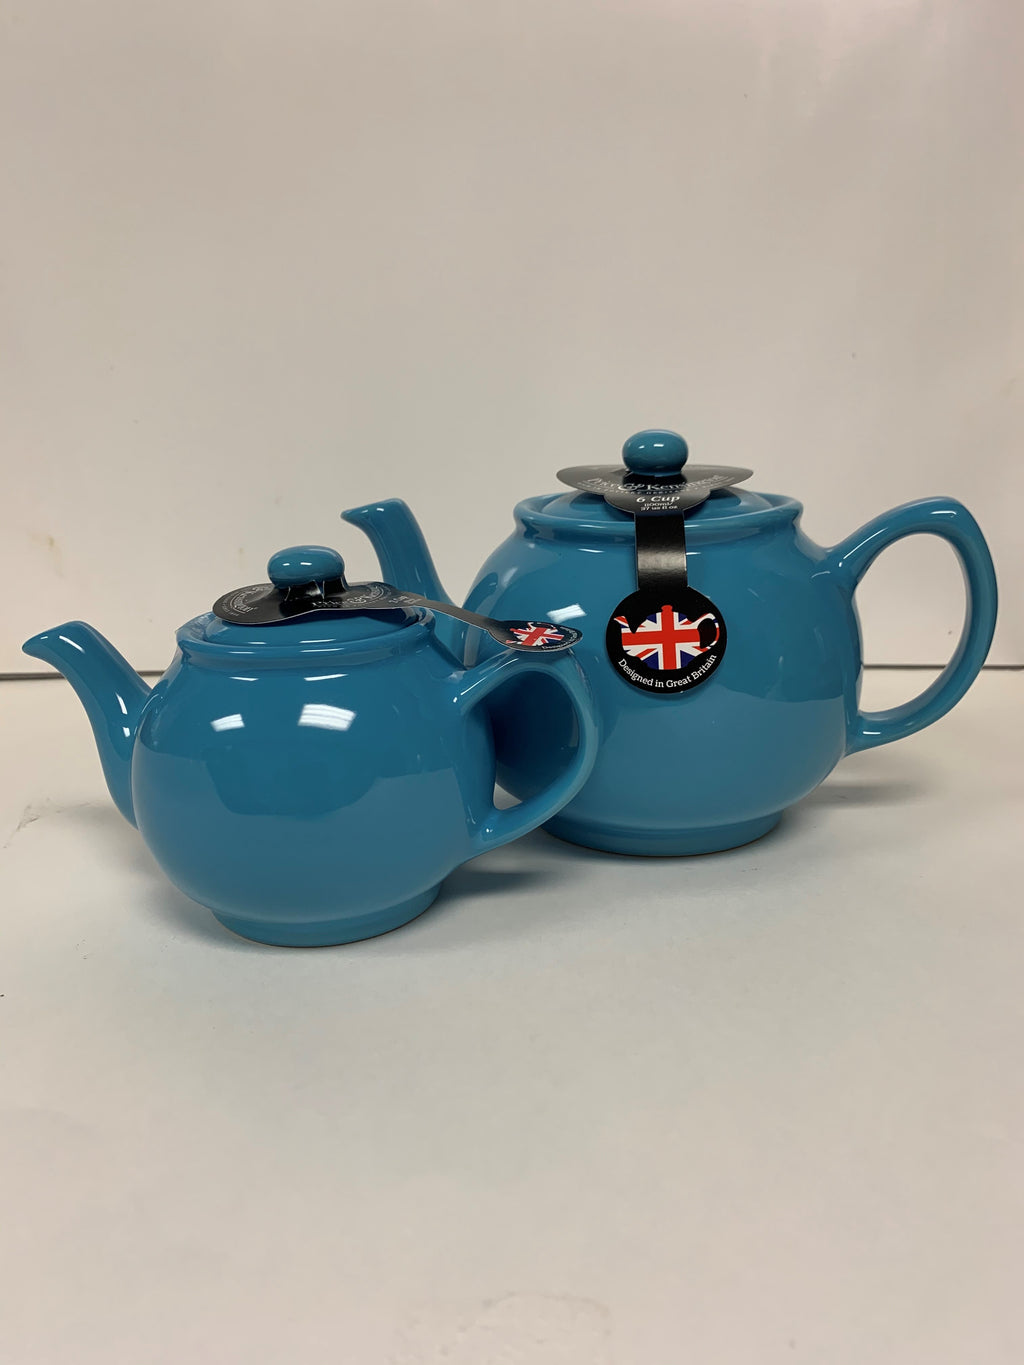 2 Cup and 6 Cup Tea Pots